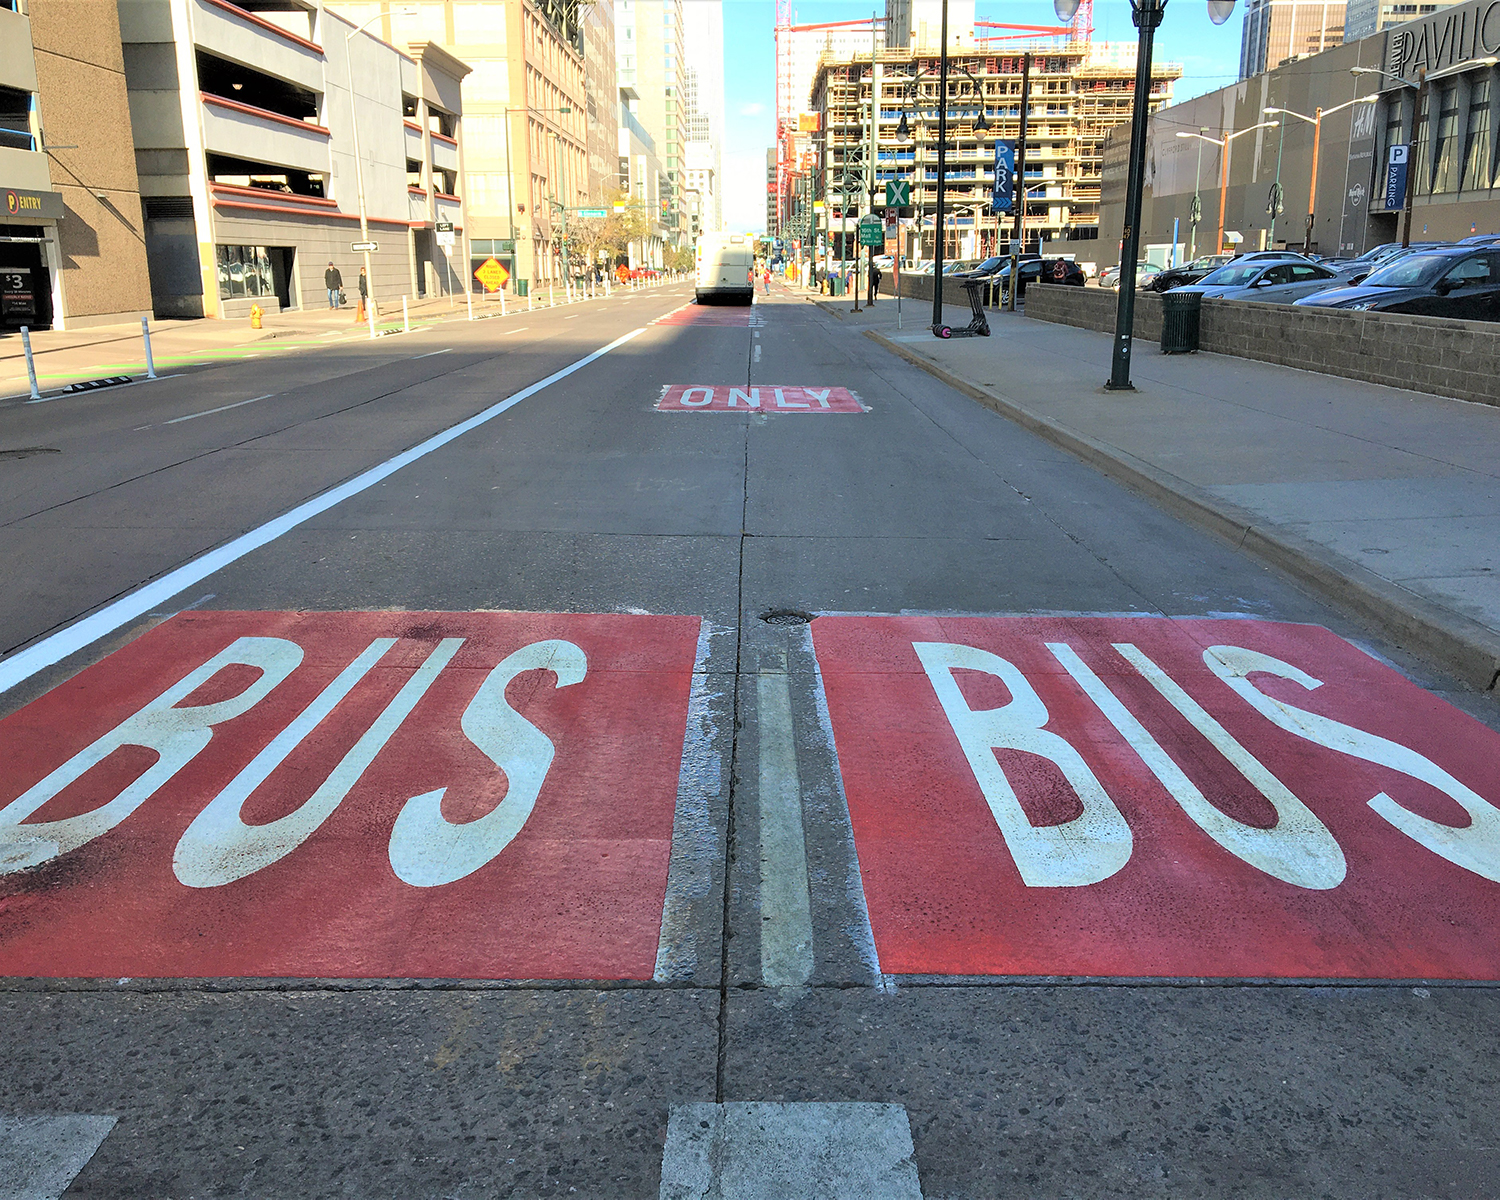 15th Street downtown with red bus only striping in far right lanes